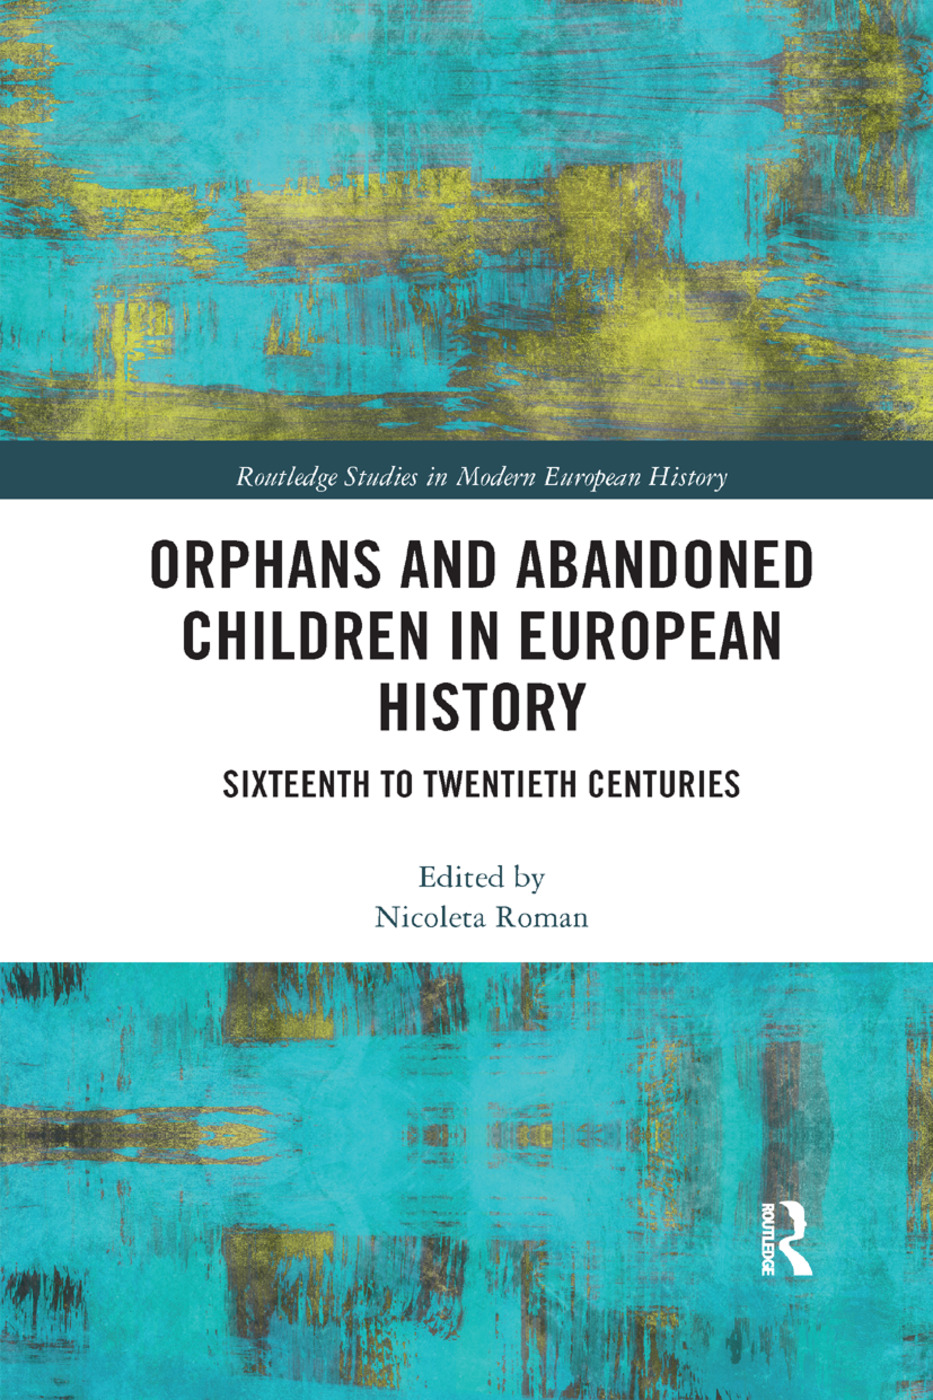 Orphans and Abandoned Children in European History: Sixteenth to Twentieth Centuries book cover